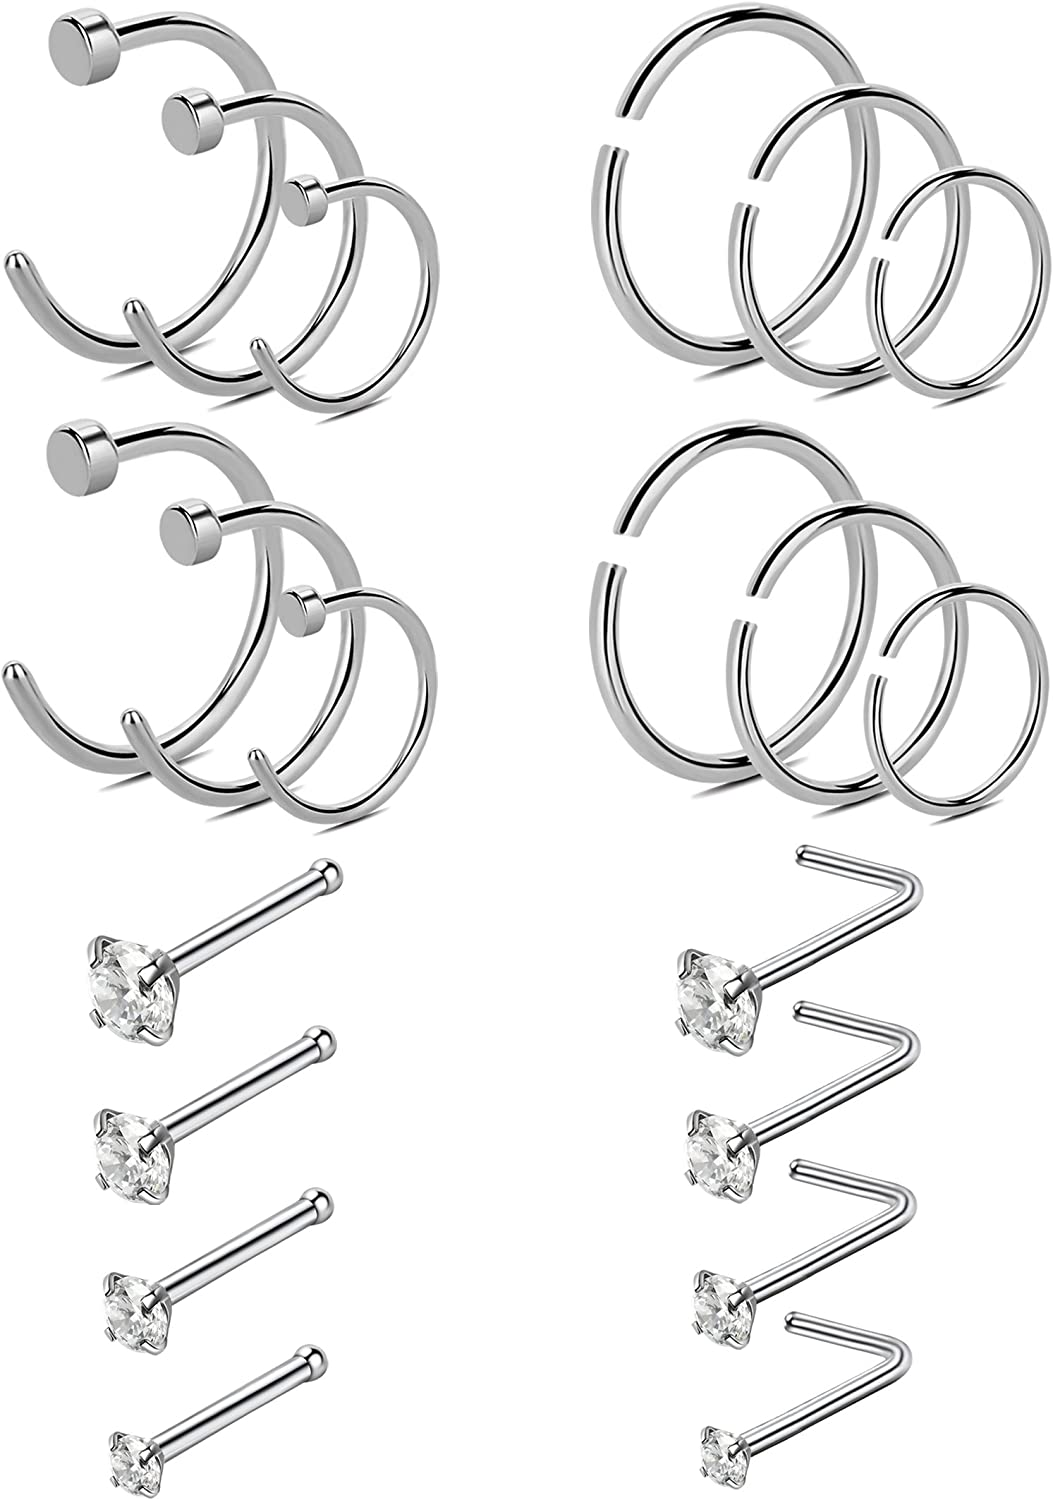 YOVORO 20-22G 20-30PCS 316L Stainless Steel Nose Rings Studs Cartilage Tragus Ear Piercing Body Jewelry